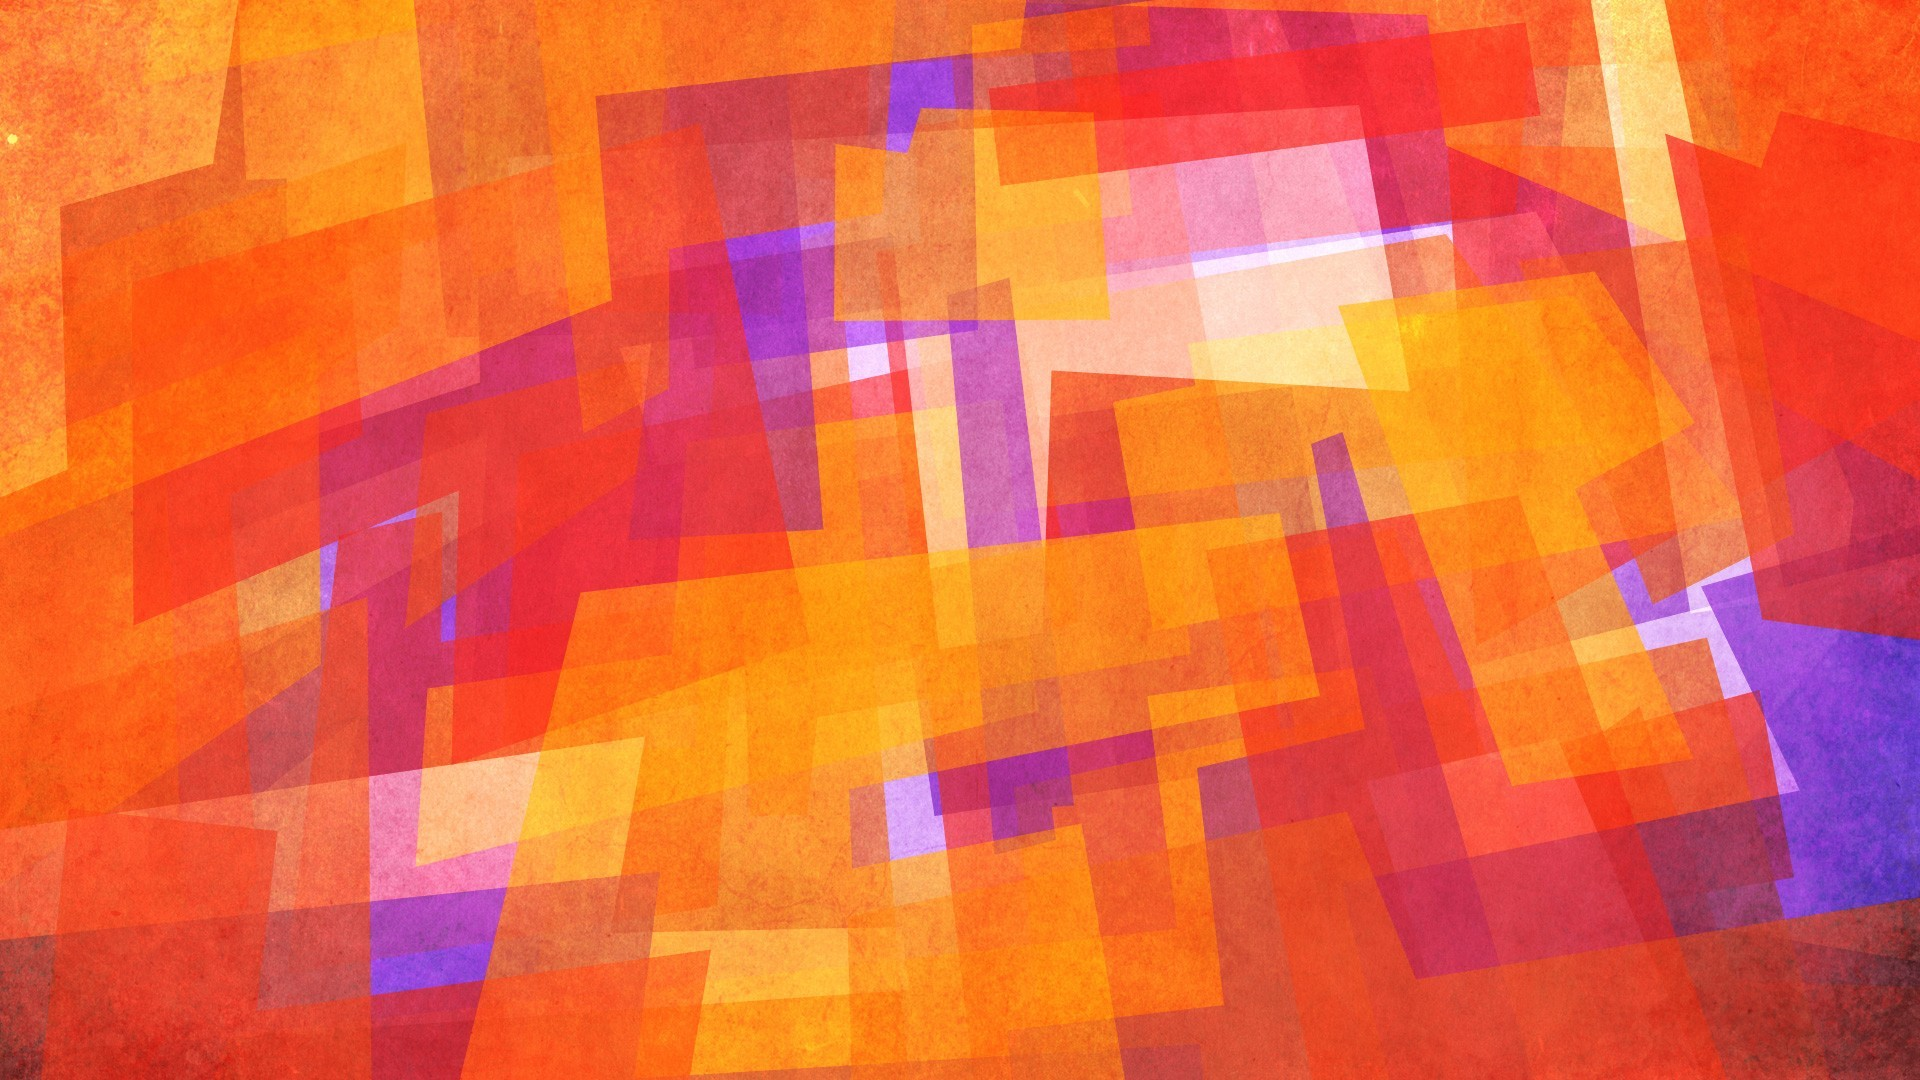 Wallpaper Colorful Painting Digital Art Abstract Red